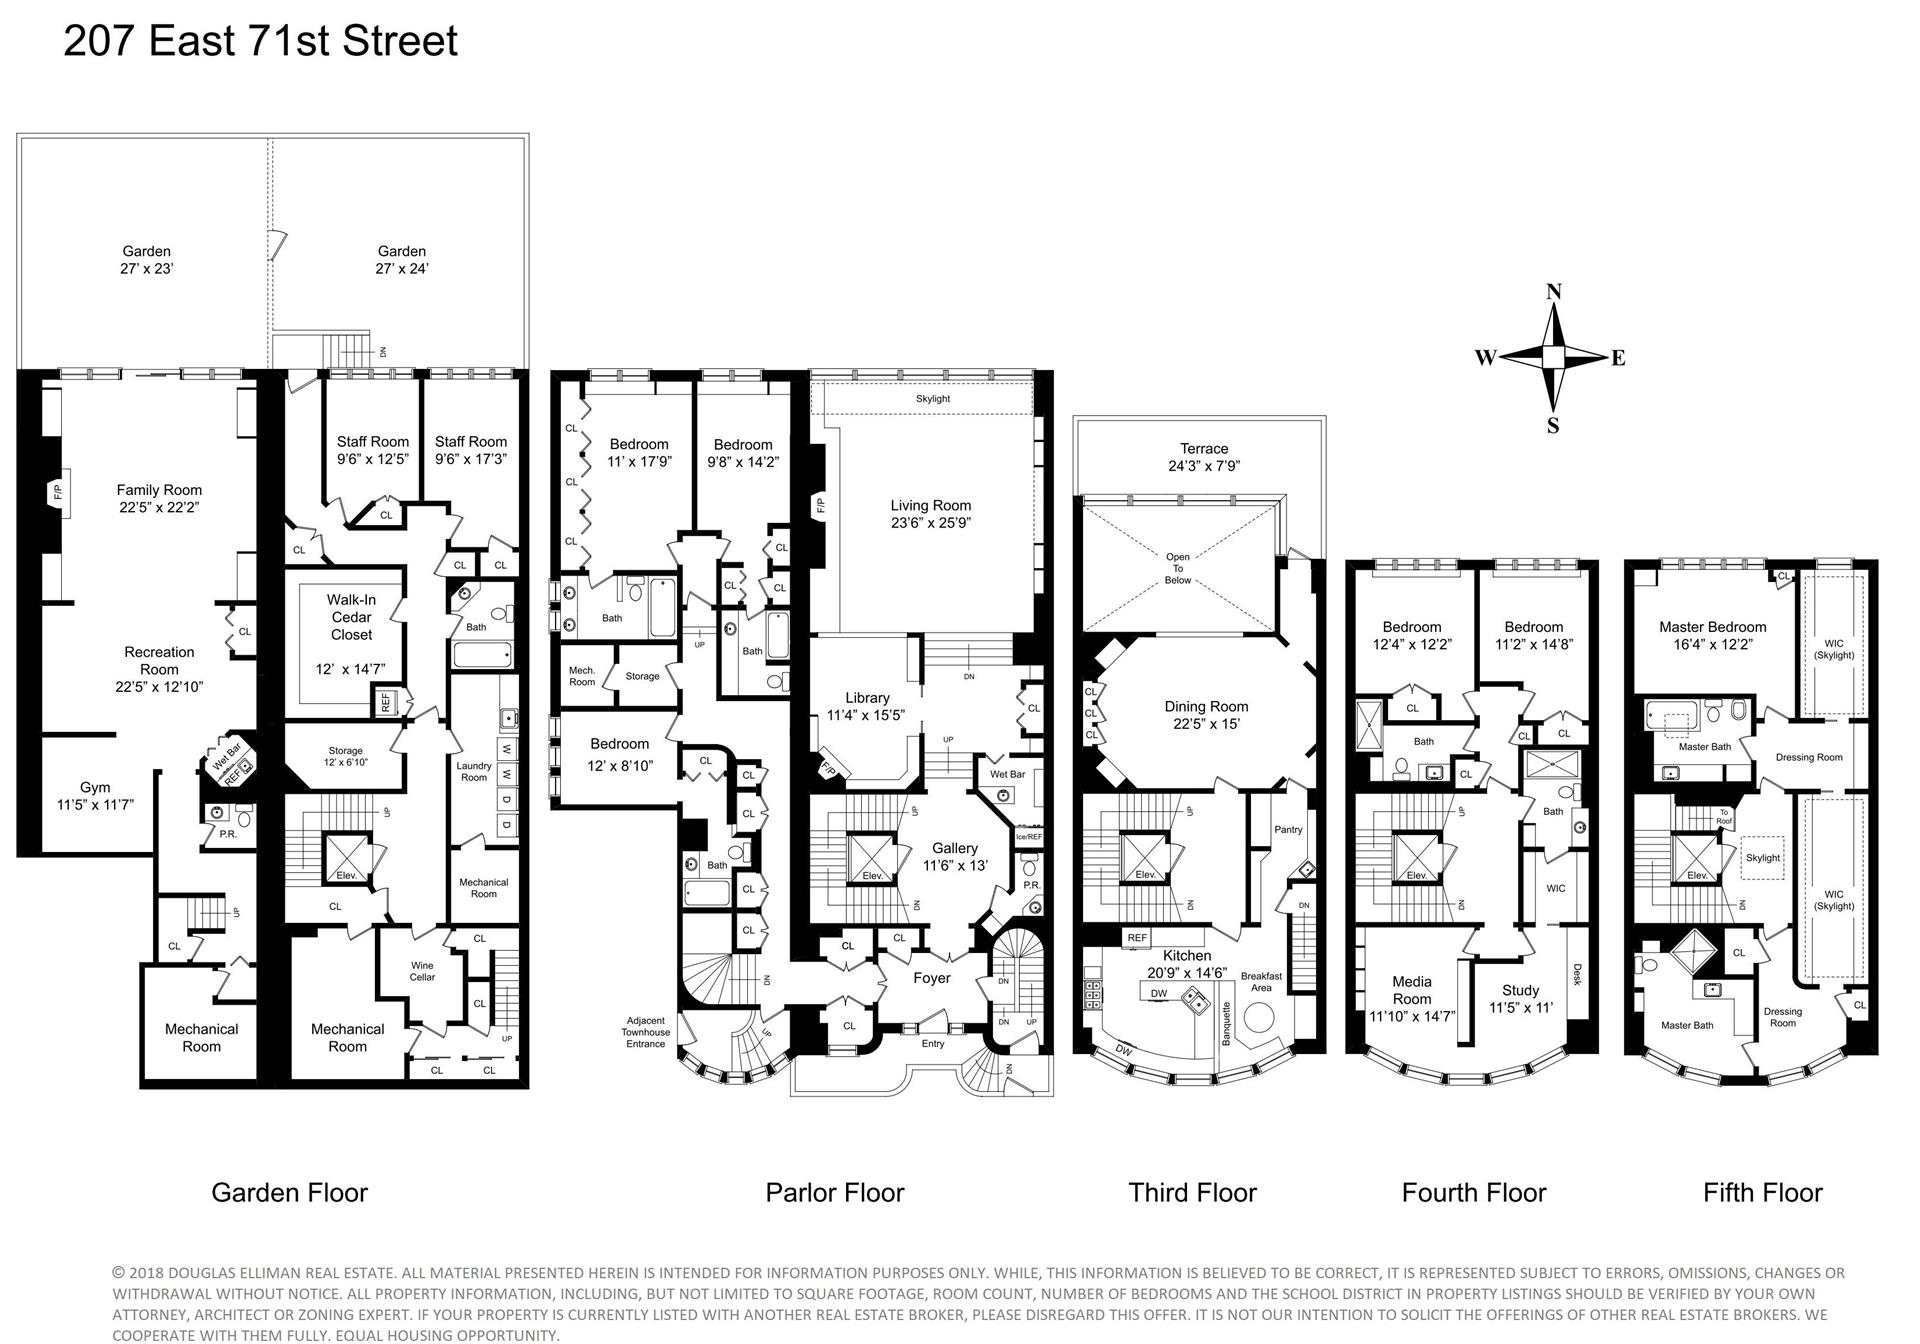 Floor plan of 207 East 71st St - Upper East Side, New York